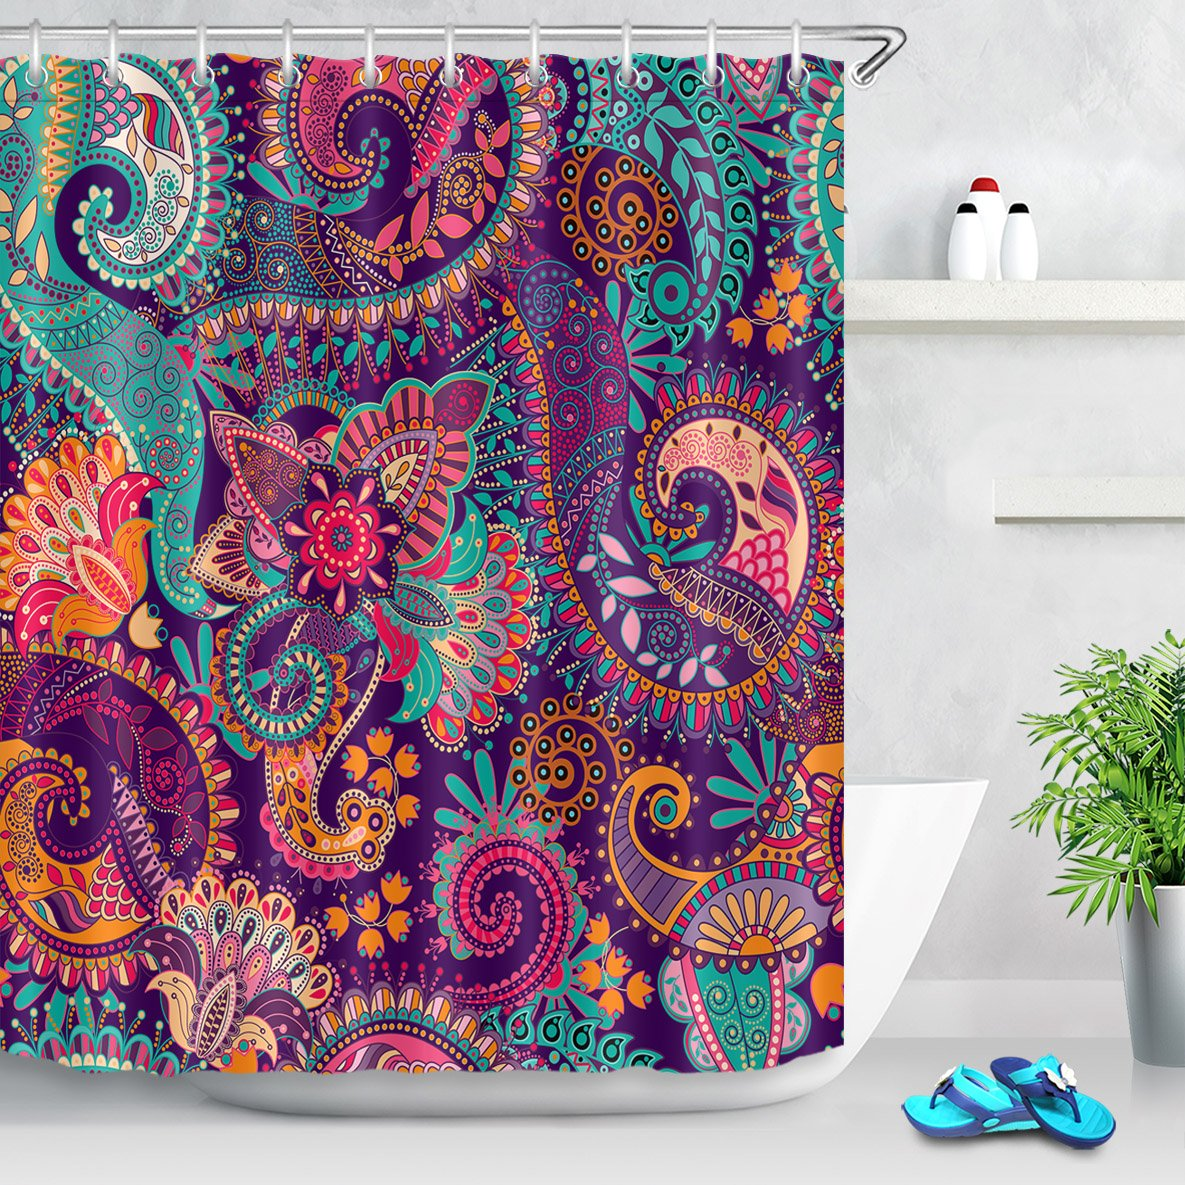 LB Indian Bohemian Shower Curtain Purple Floral Mandala Print Tribal Shower Curtains for Bathroom Waterproof Eco-Friendly Fabric Bathroom Set with Hooks,72 x 72 inches